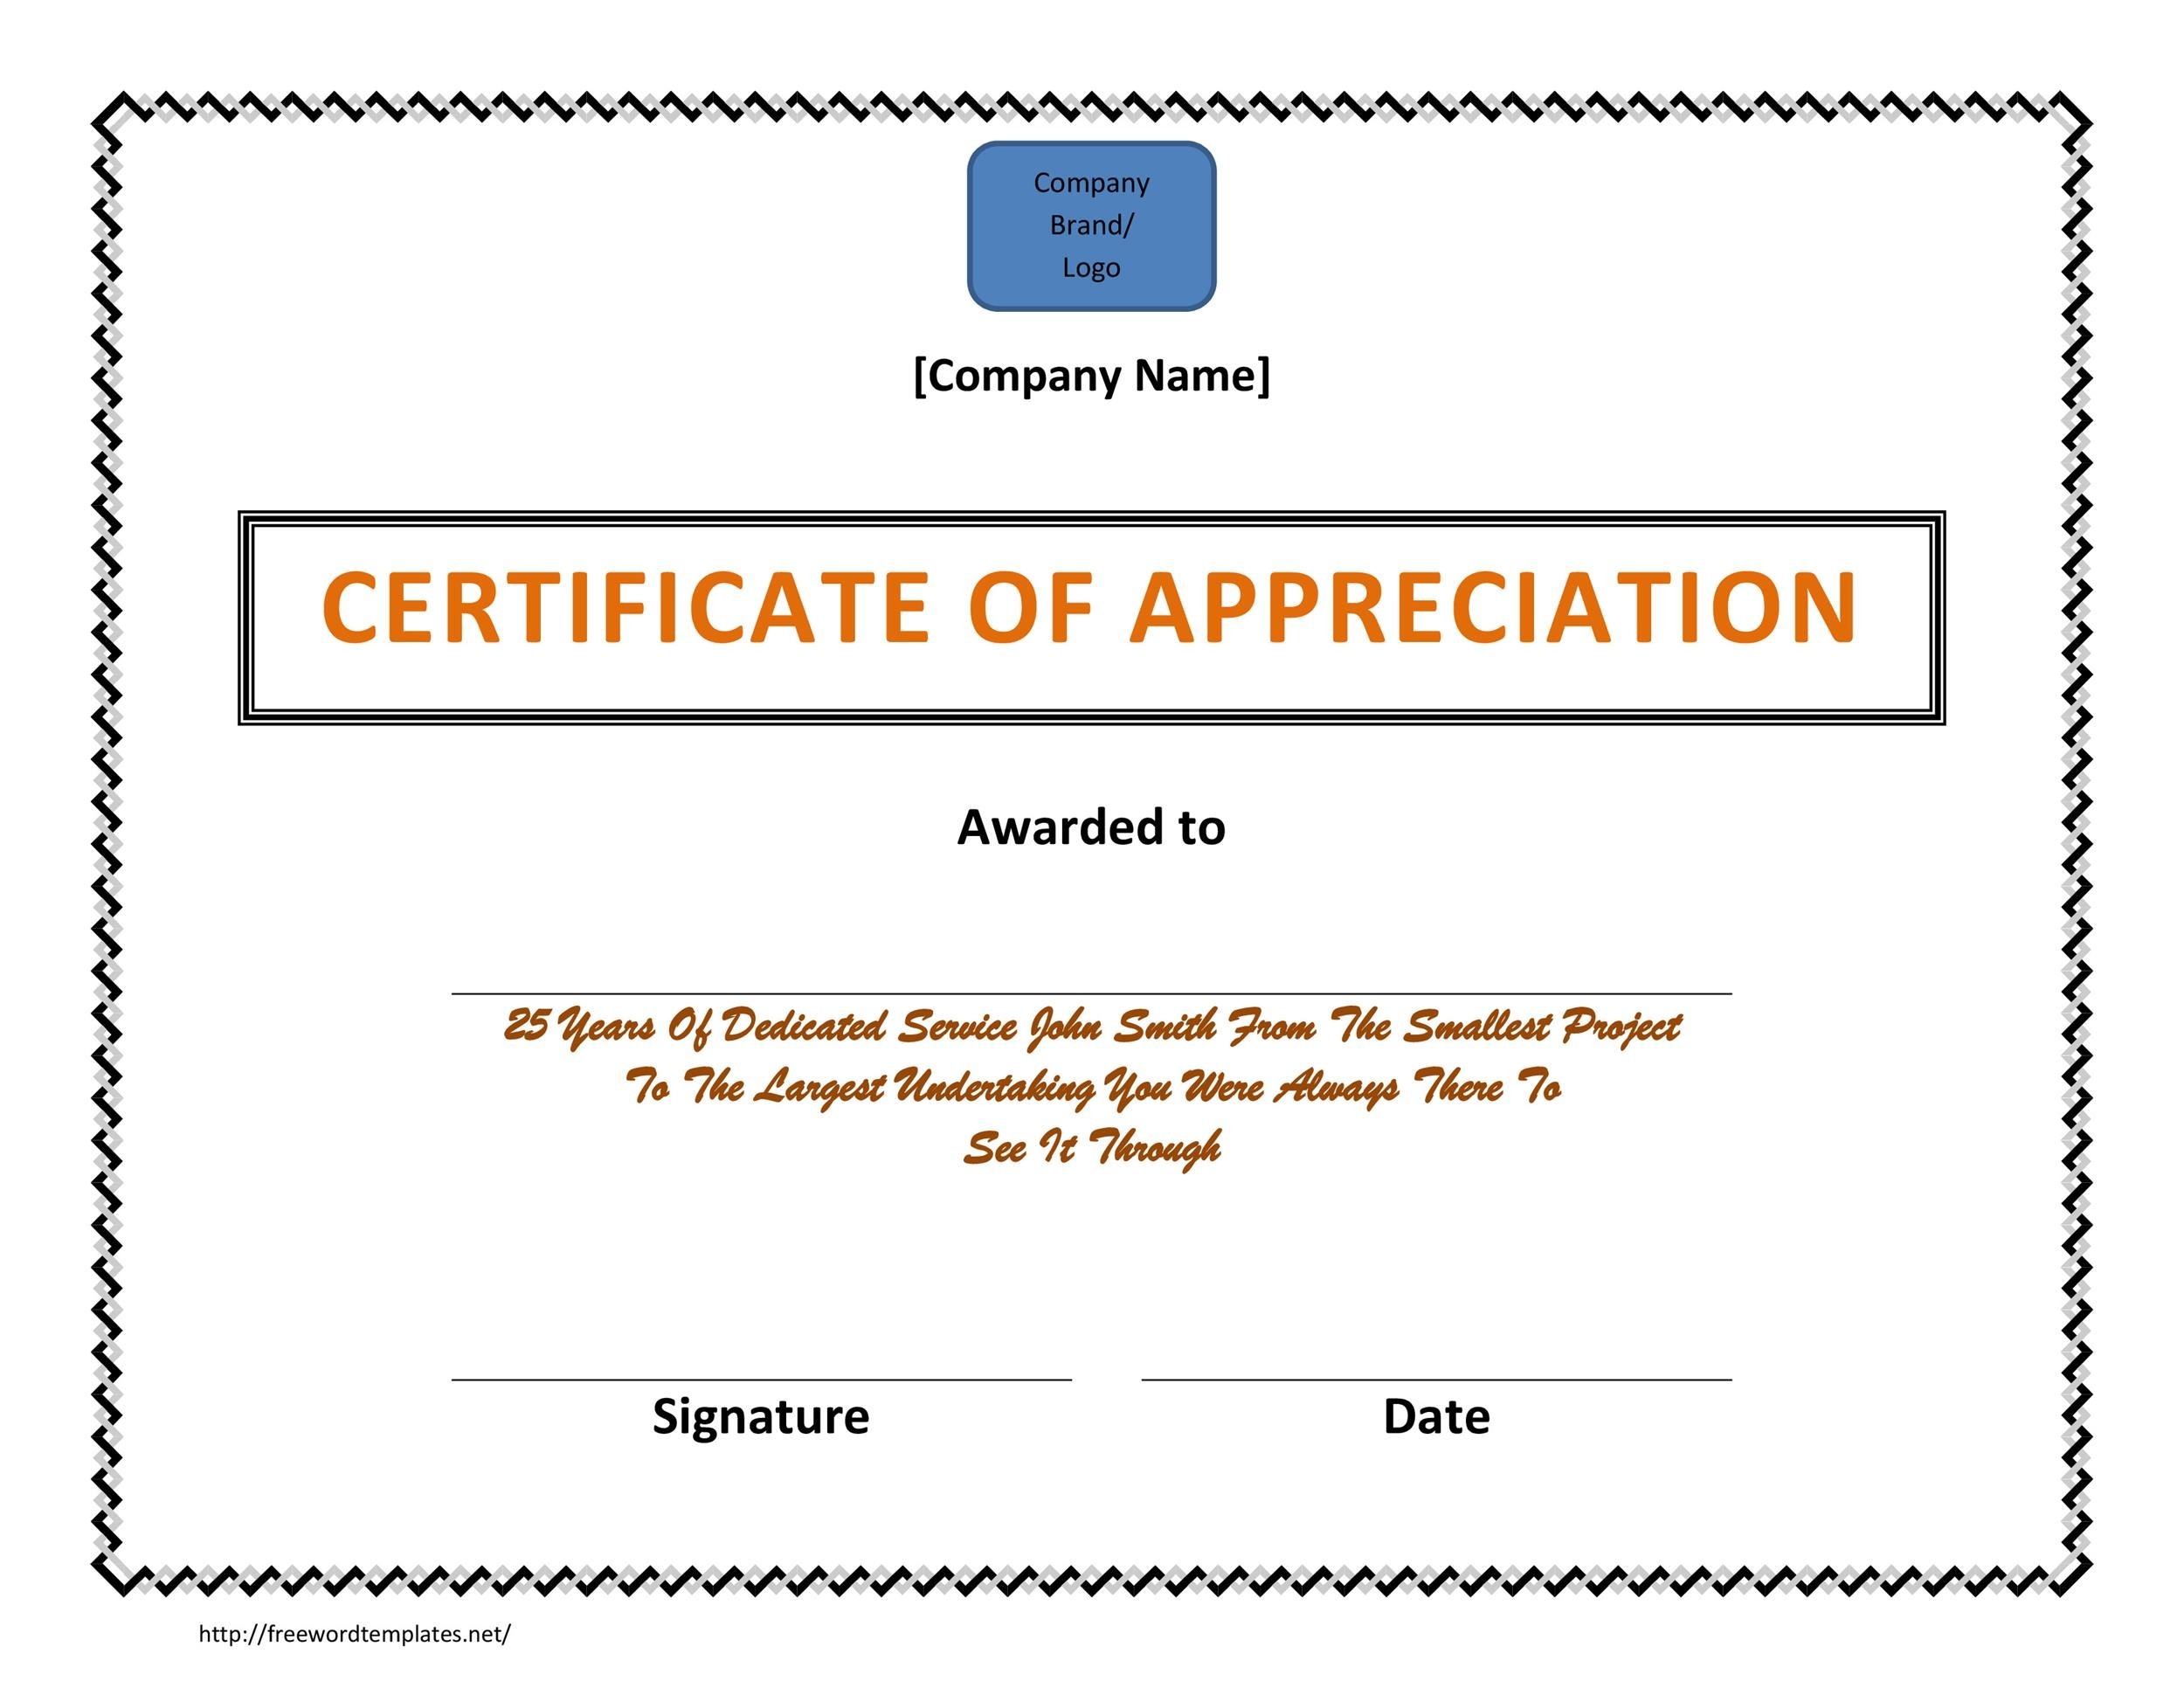 30 free certificate of appreciation templates and letters printable certificate of appreciation 05 yadclub Choice Image